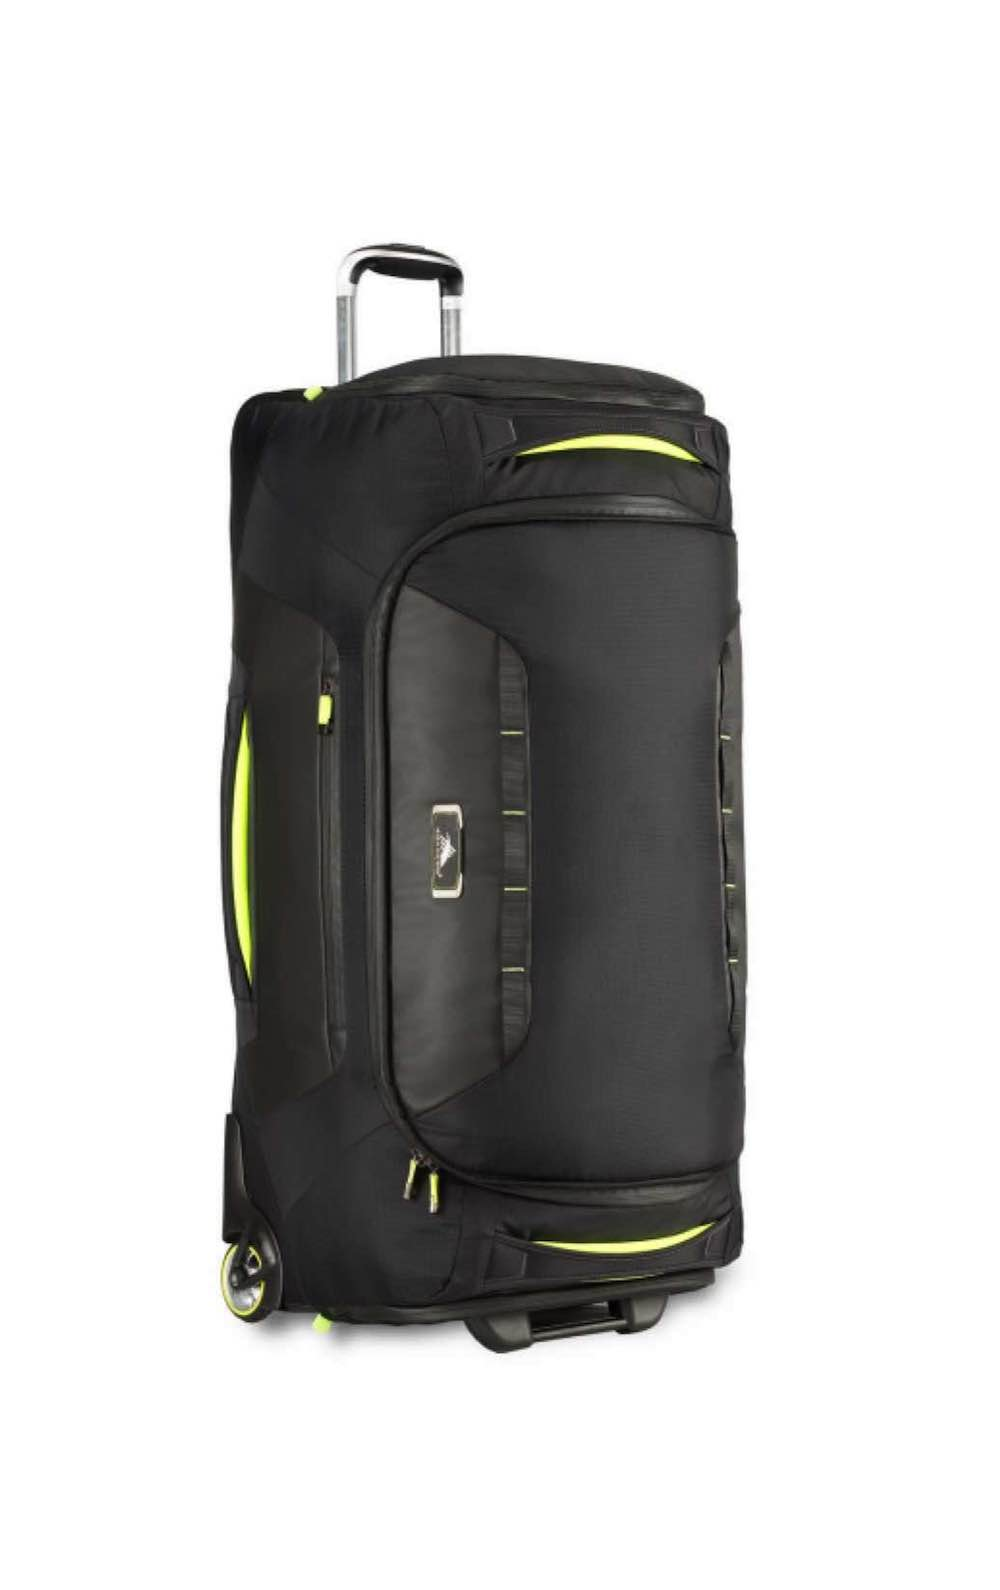 AT8   86cm Wheeled Duffle - Black   Zest   High Sierra d007e85a213d2